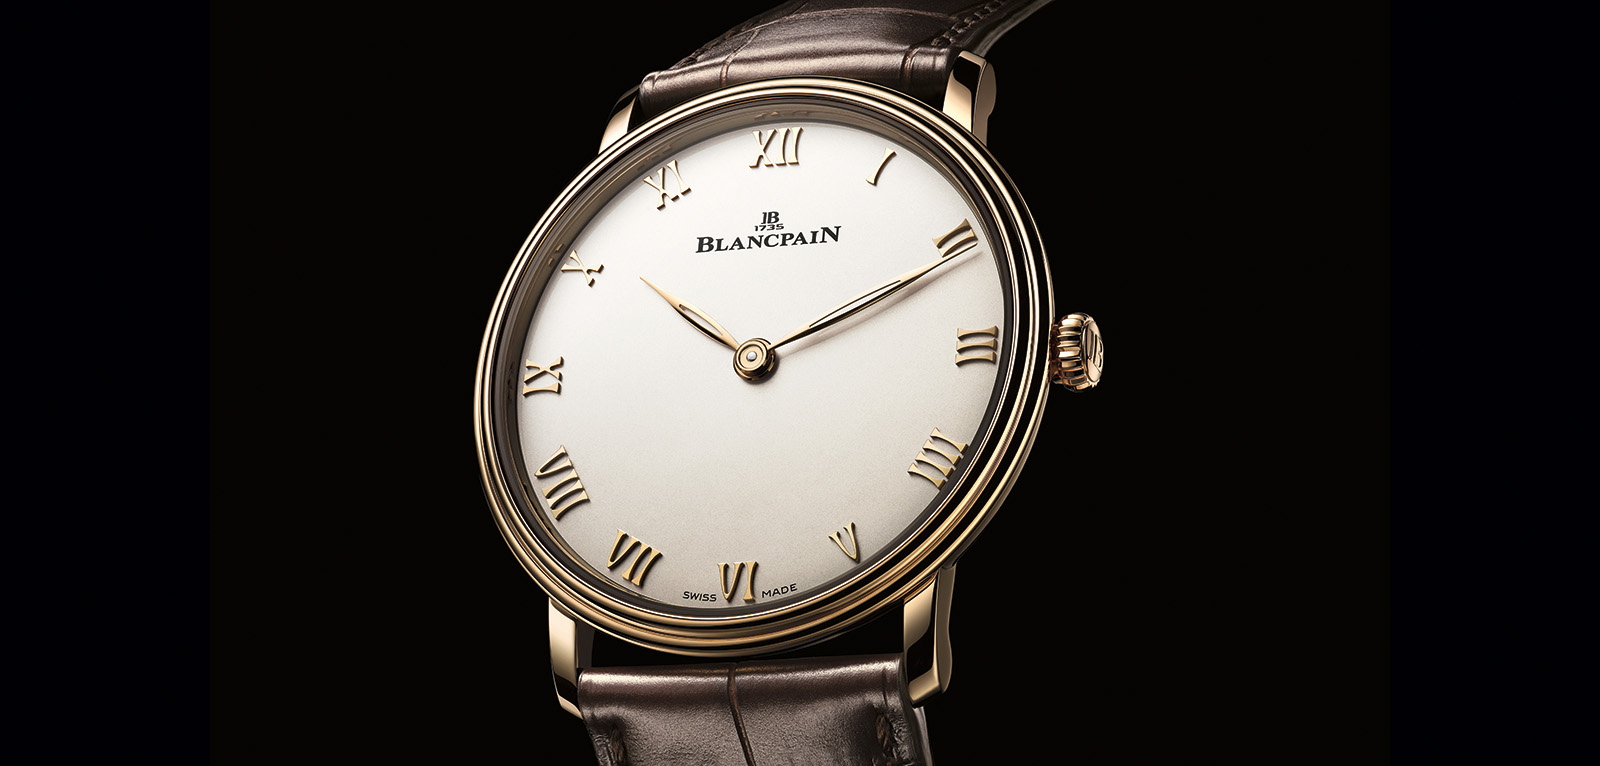 Blancpain Villeret Extra-plate